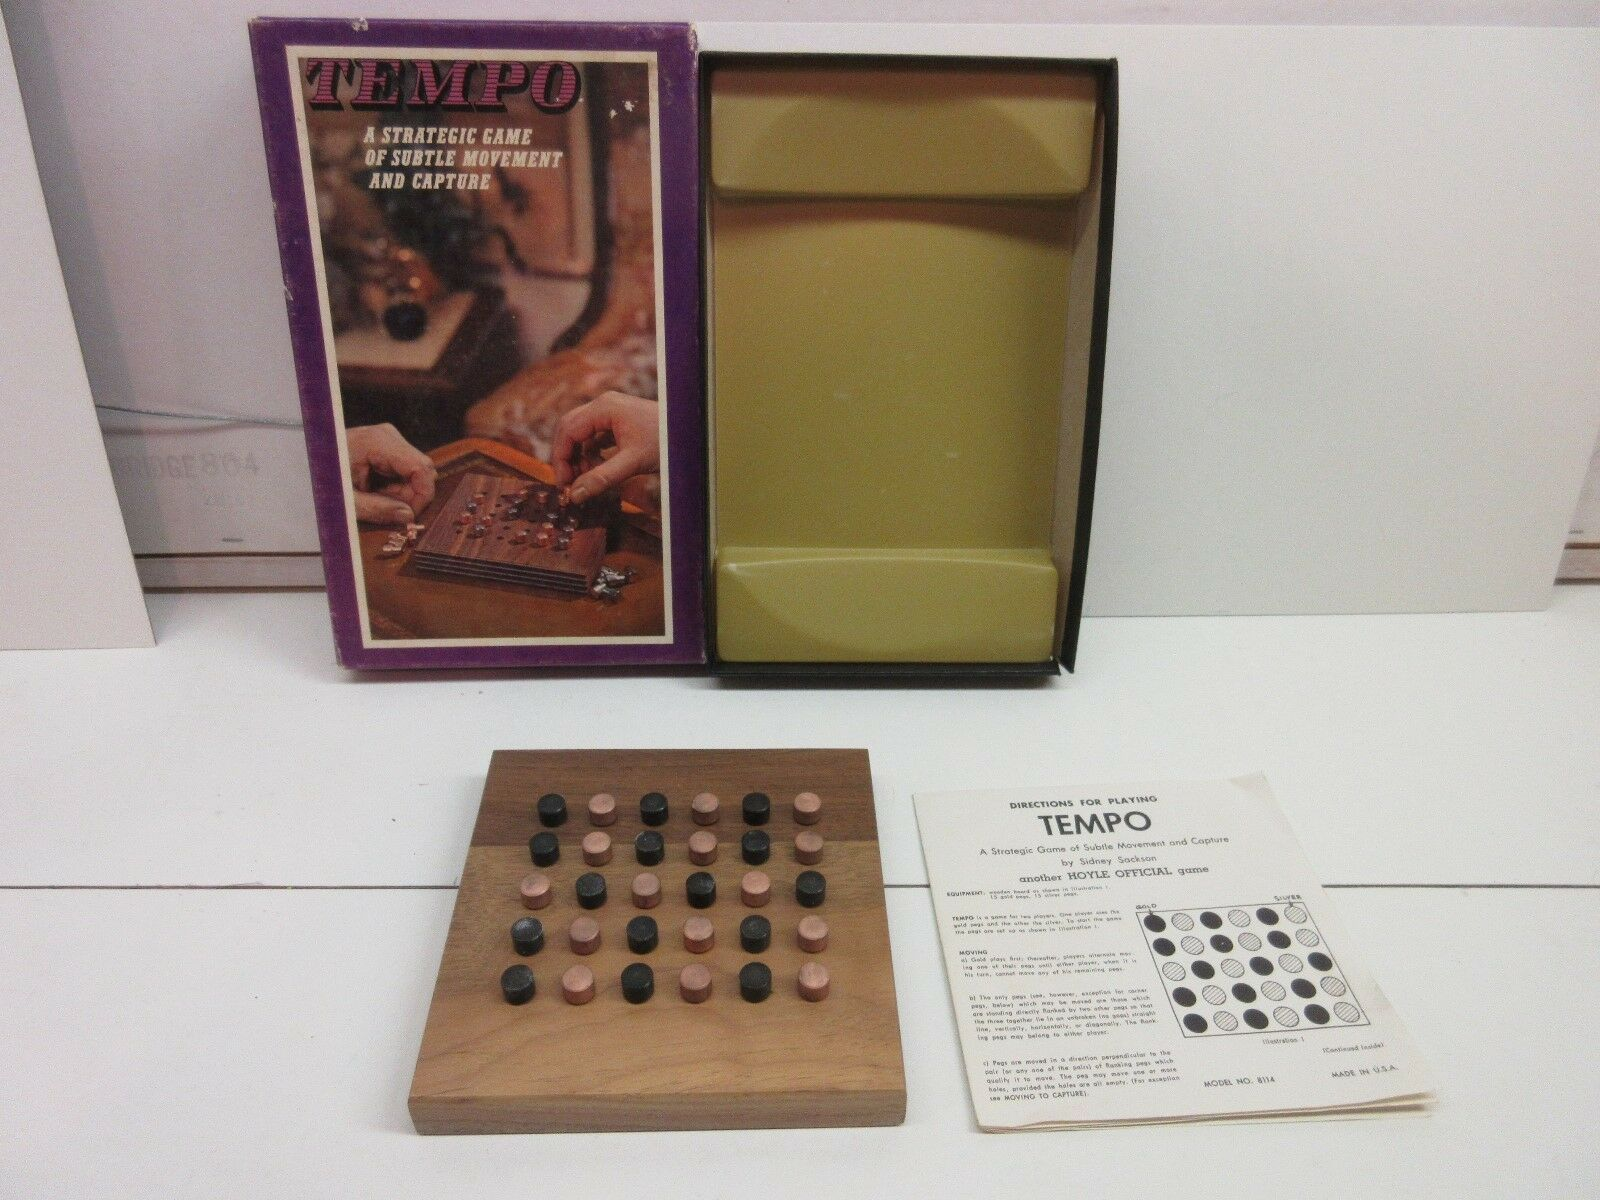 Tempo vintage strategy game - wood and metal